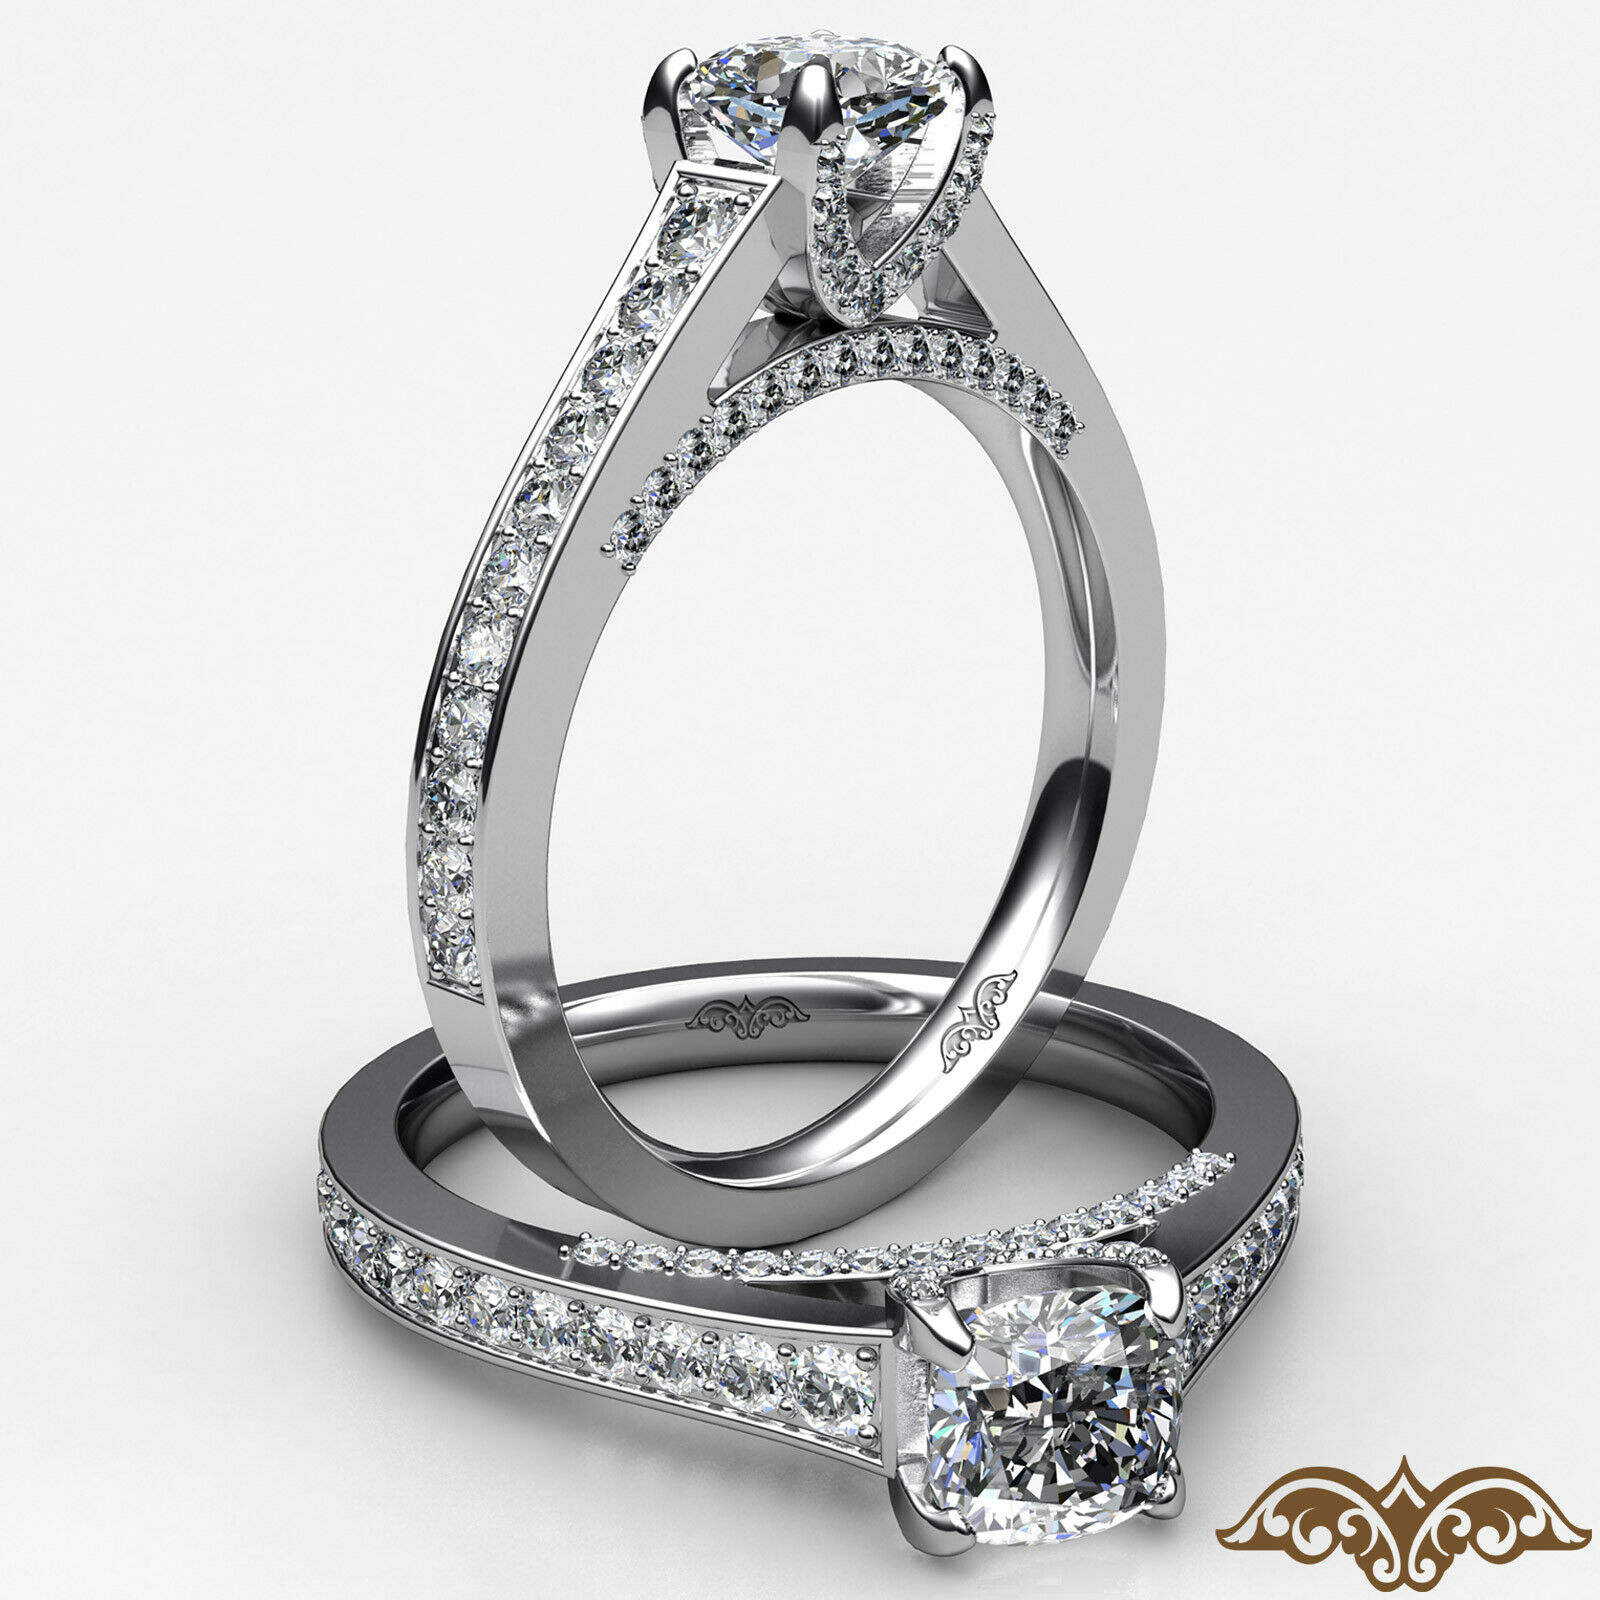 1.25ctw Pave Set Bridge Style Cushion Diamond Engagement Ring GIA J-SI1 W Gold